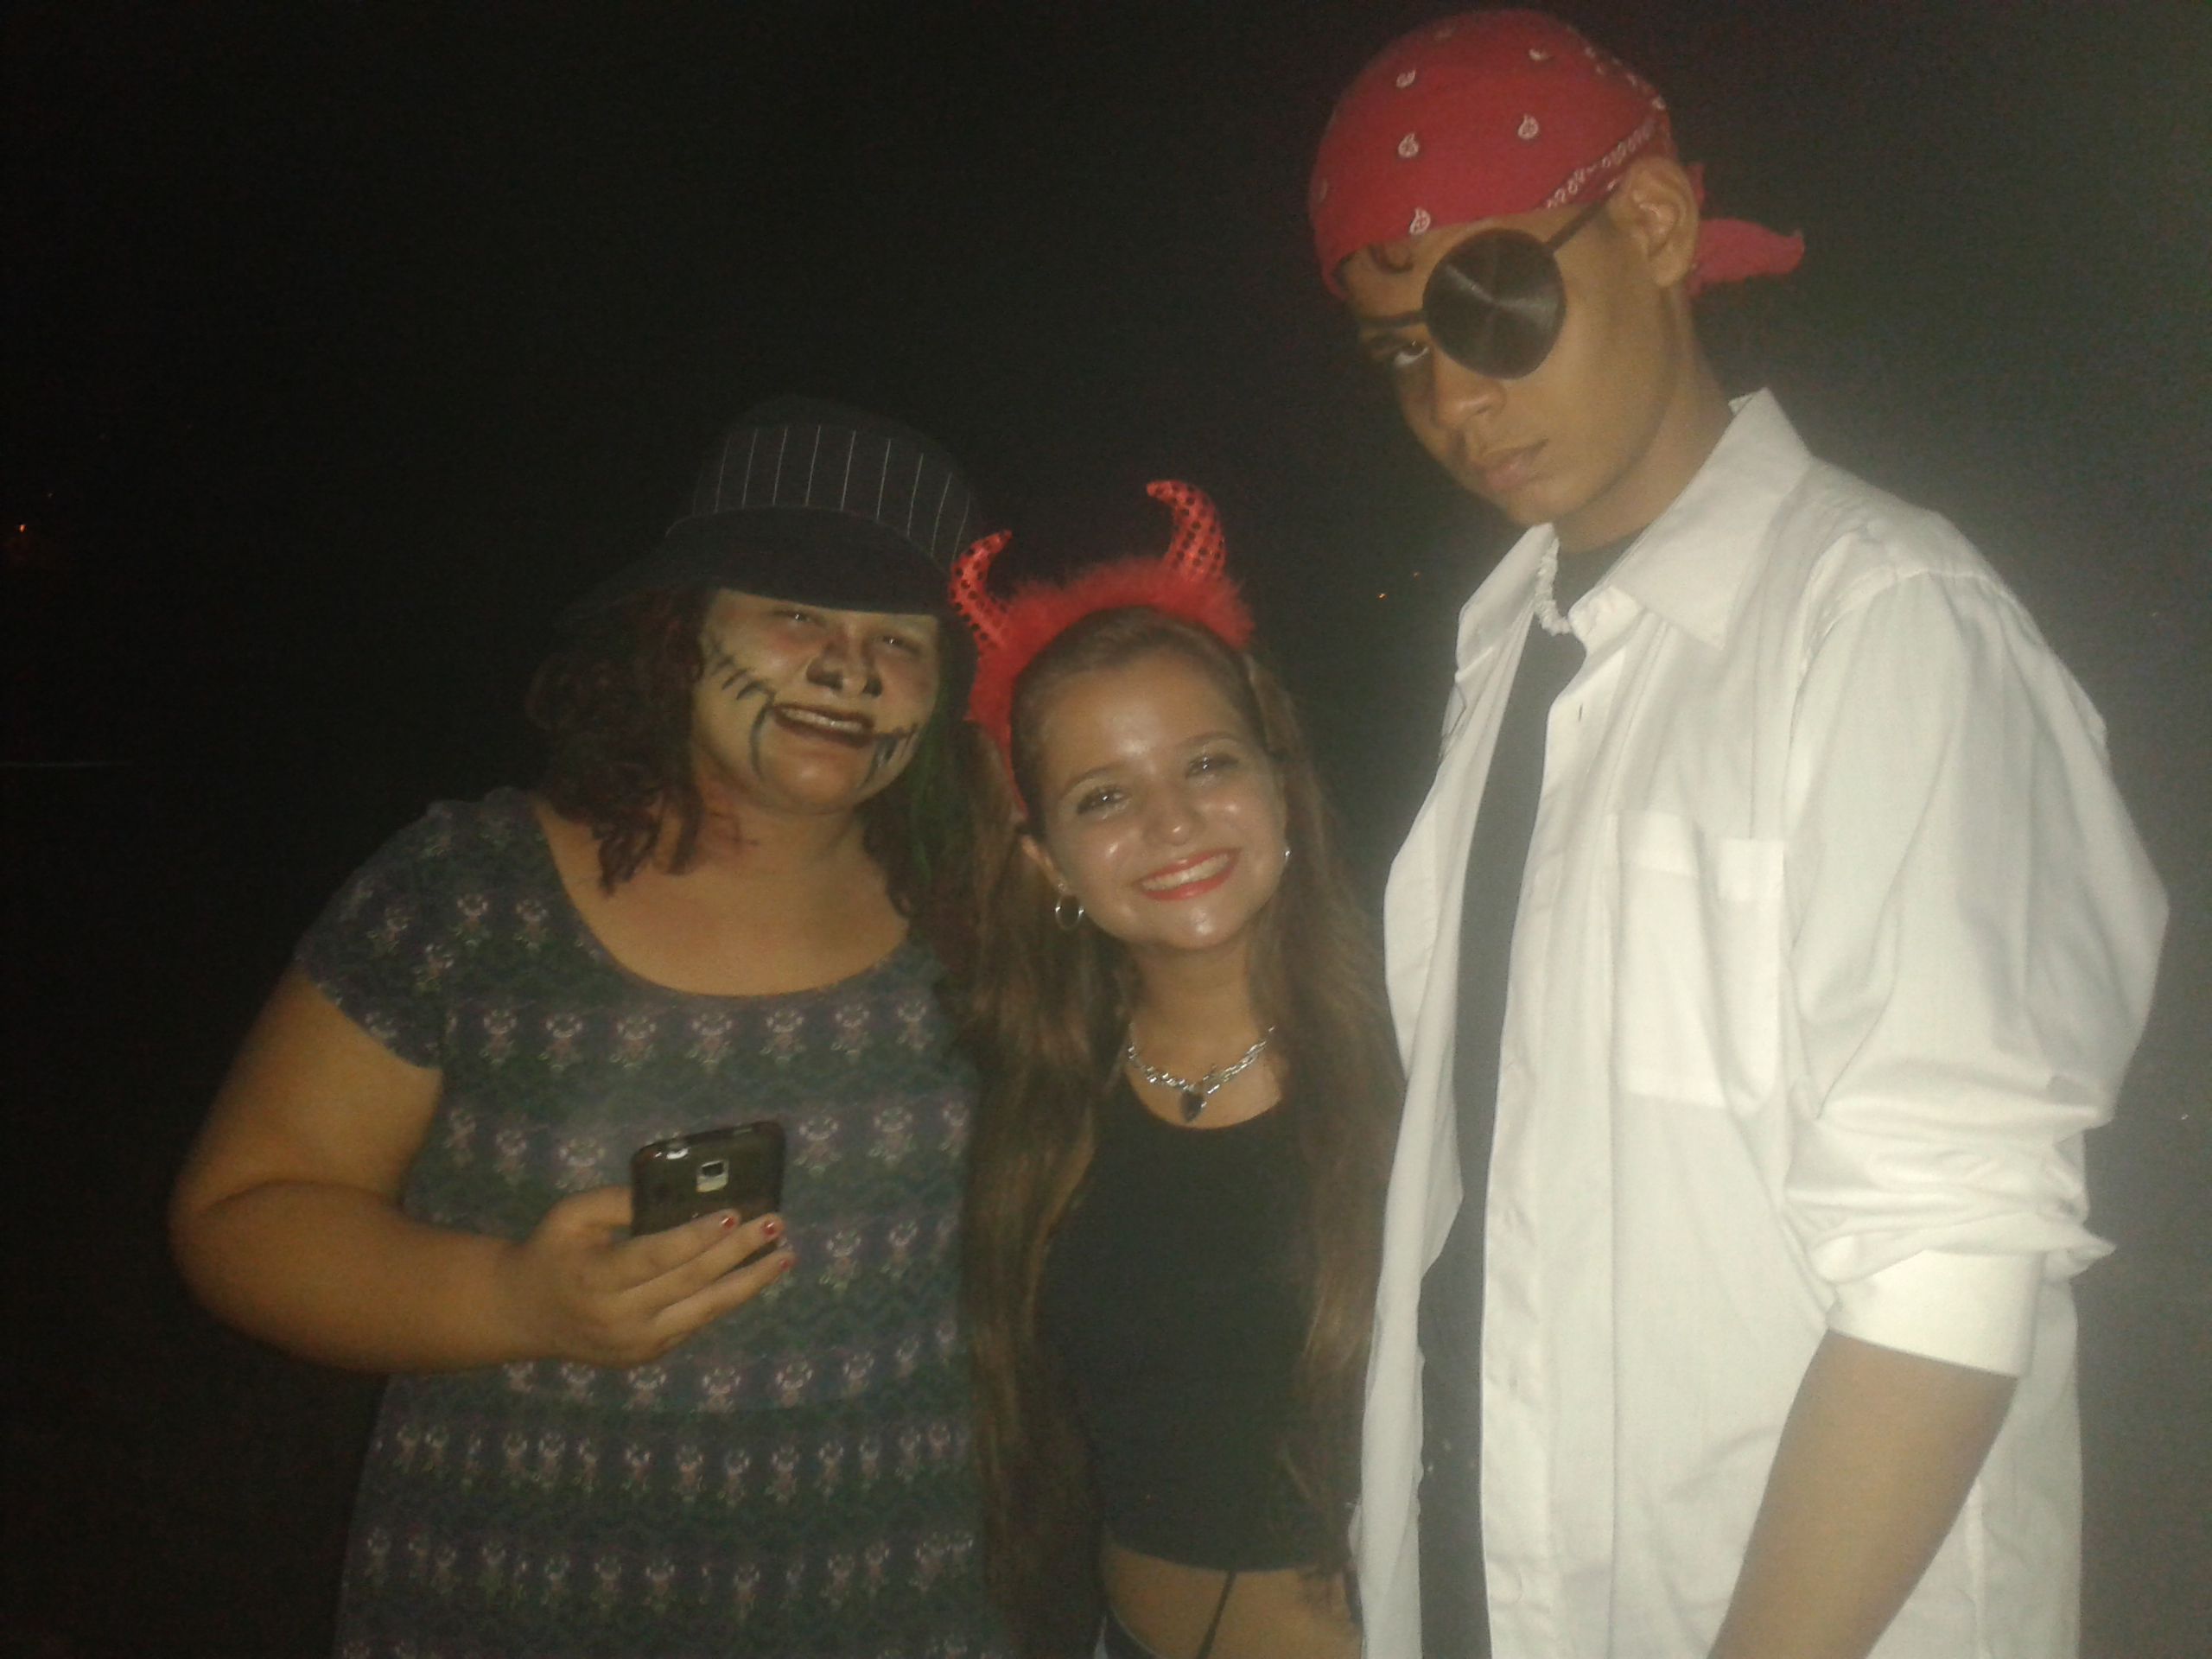 The Haunted House was Great!